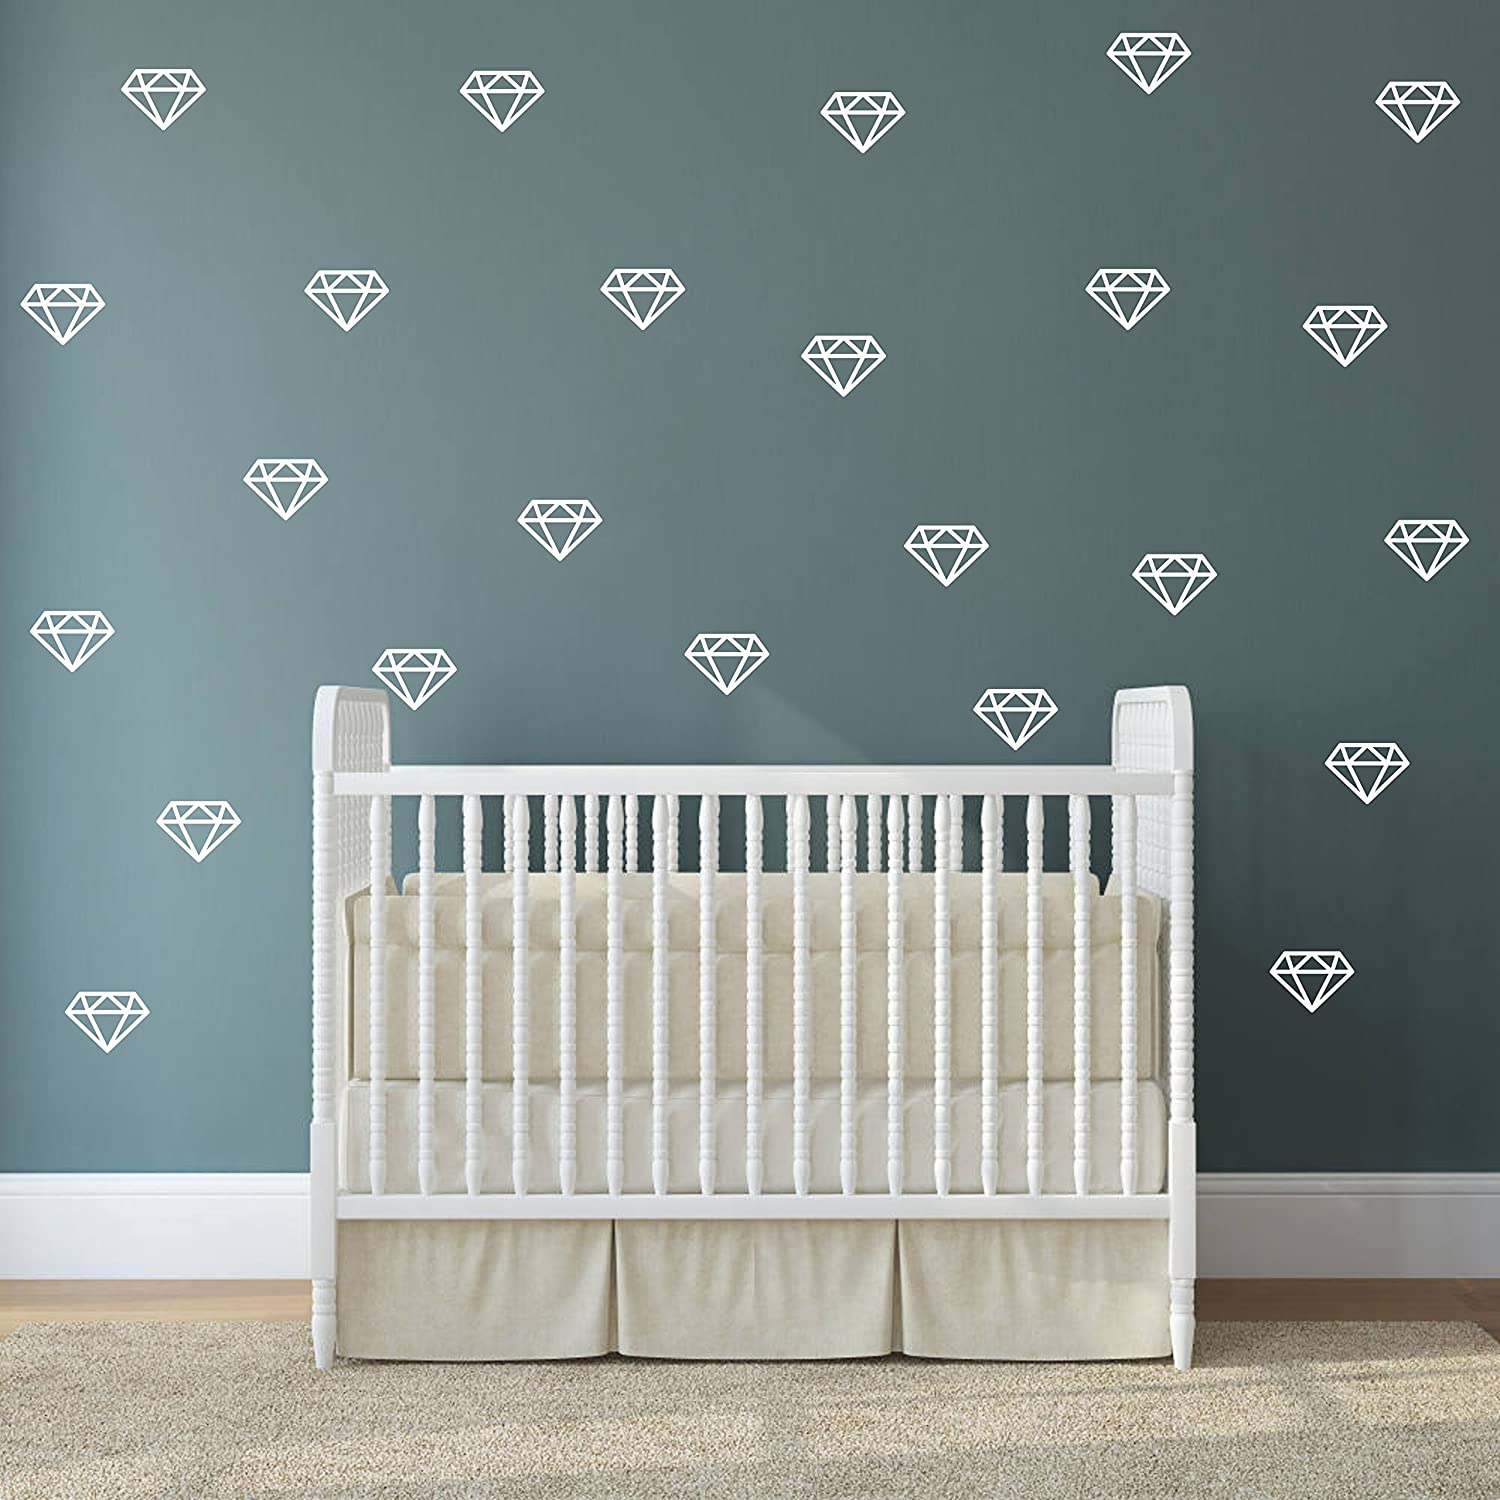 Geometric Decor,Vinyl Wall Stickers for Baby Kids Bedroom Nursery Decoration Diamond Wall Decals,Wall Art A15 White